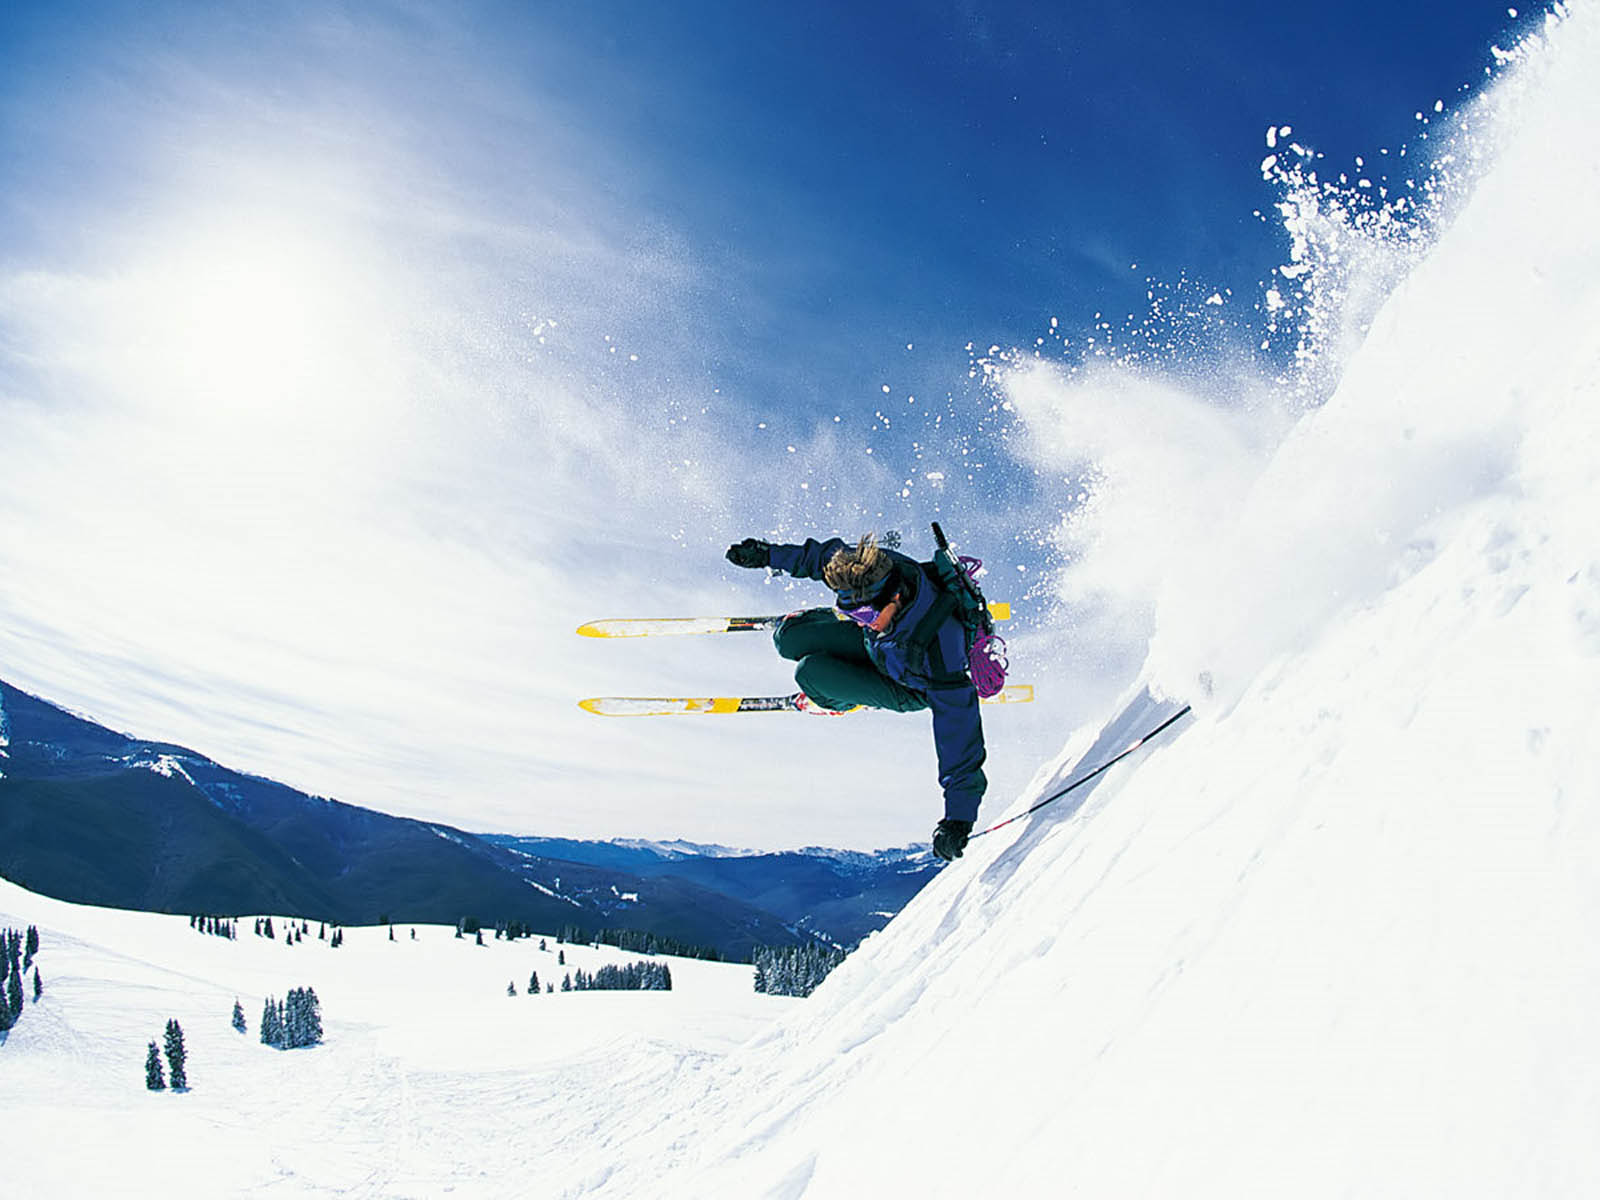 Skiing Wallpaper Skiing Wallpapers High Quality Download Free